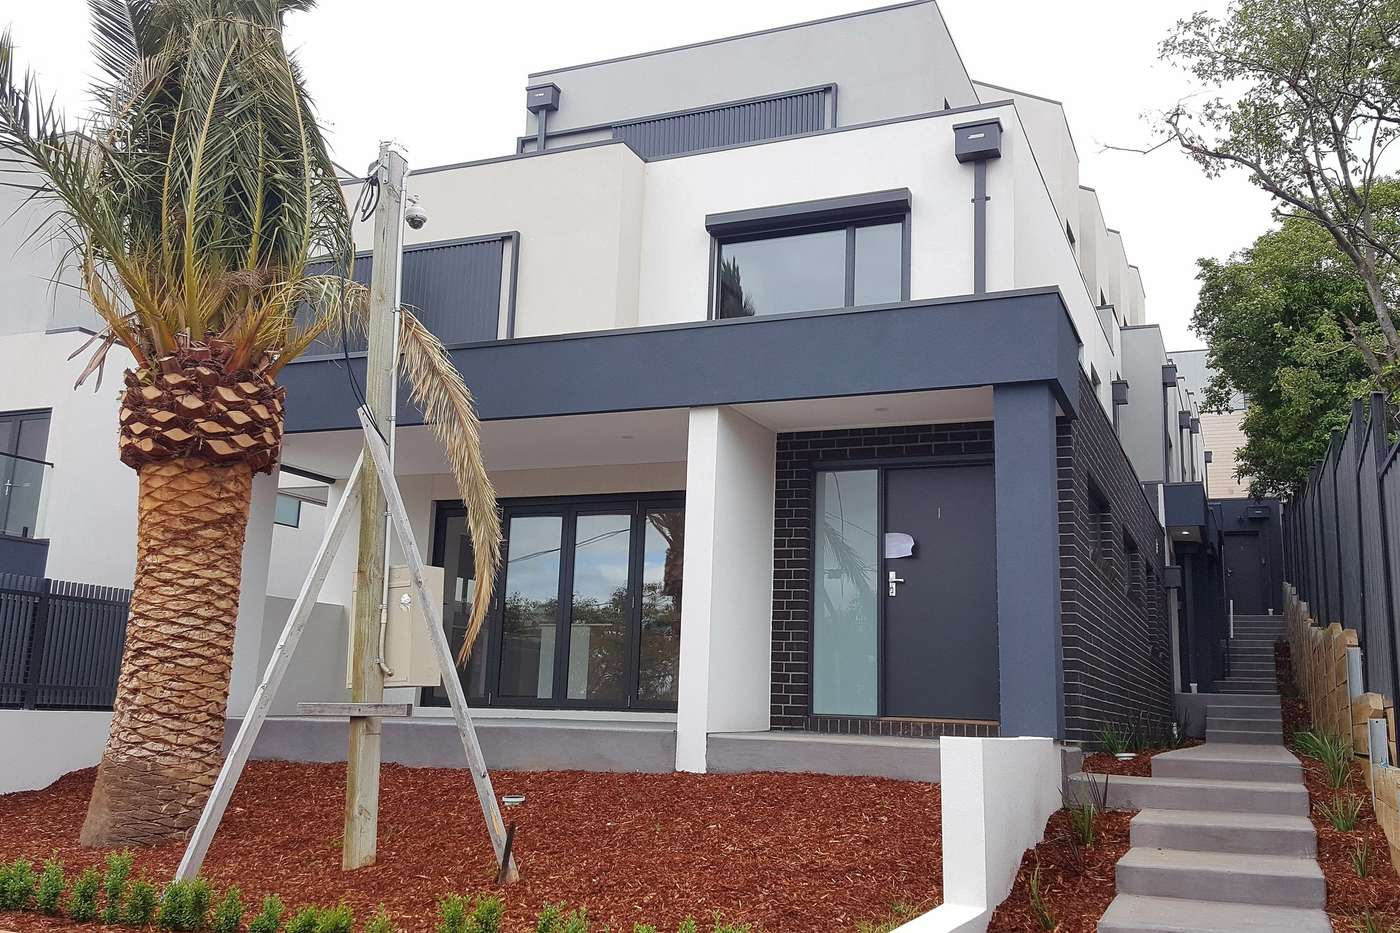 Main view of Homely townhouse listing, 2/14-16 Grover Street, Pascoe Vale, VIC 3044